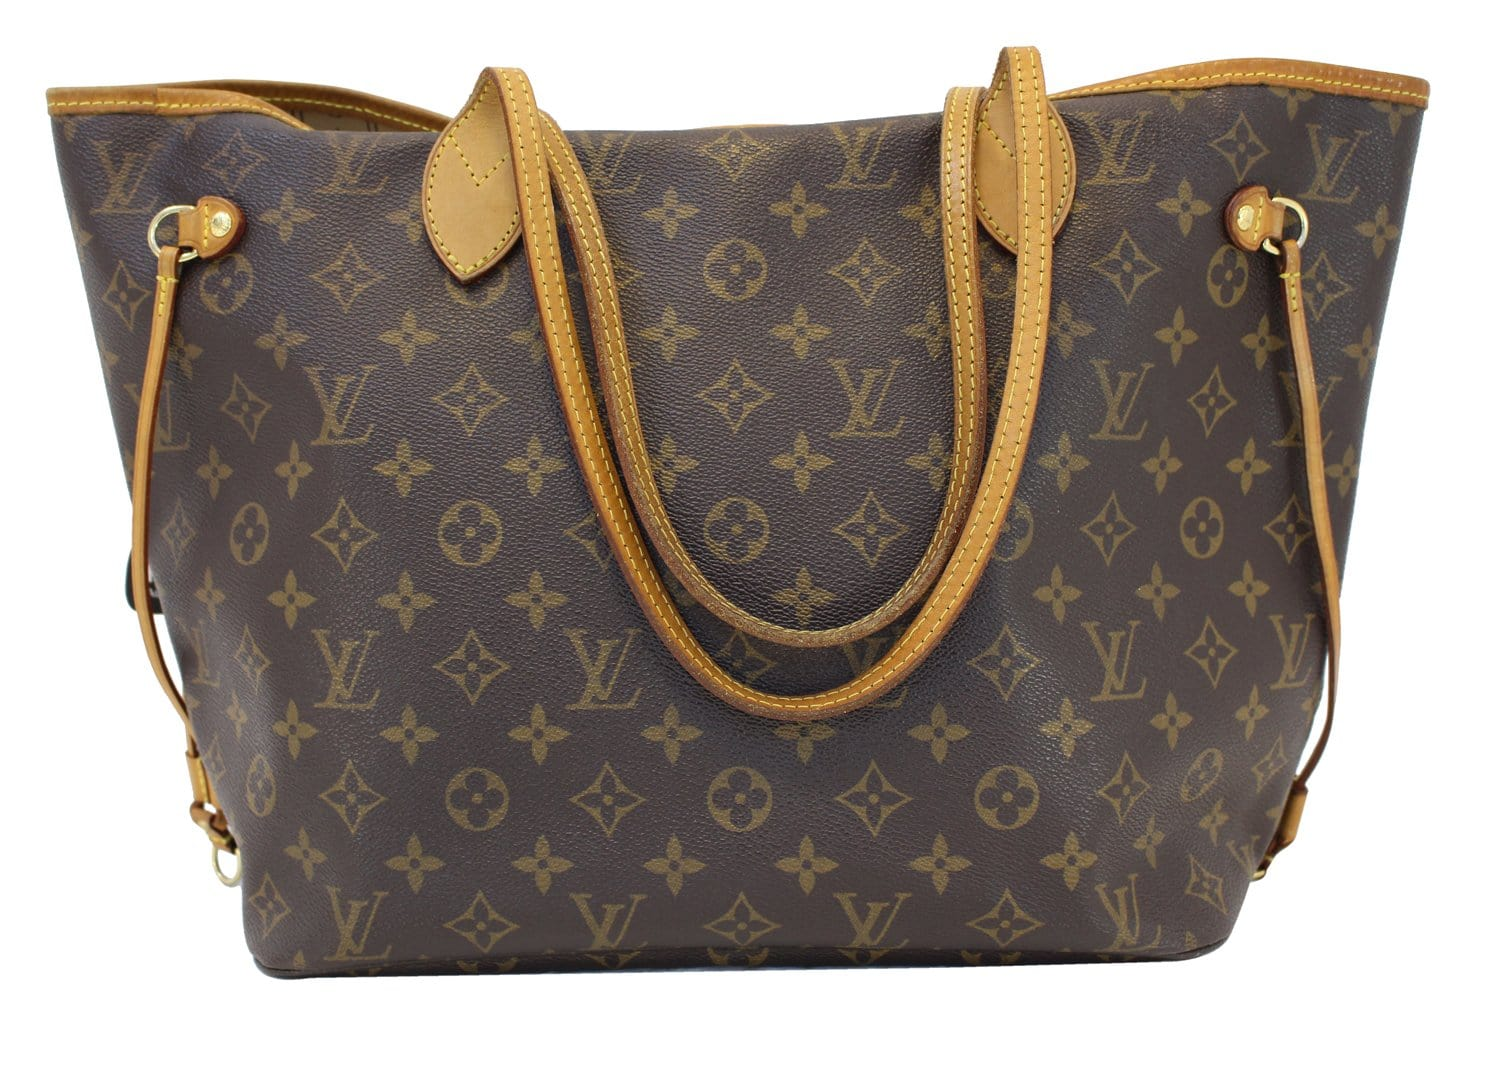 fd0364f4d7d4c Authentic LOUIS VUITTON Neverfull MM Monogram Canvas Tote Bag CC339